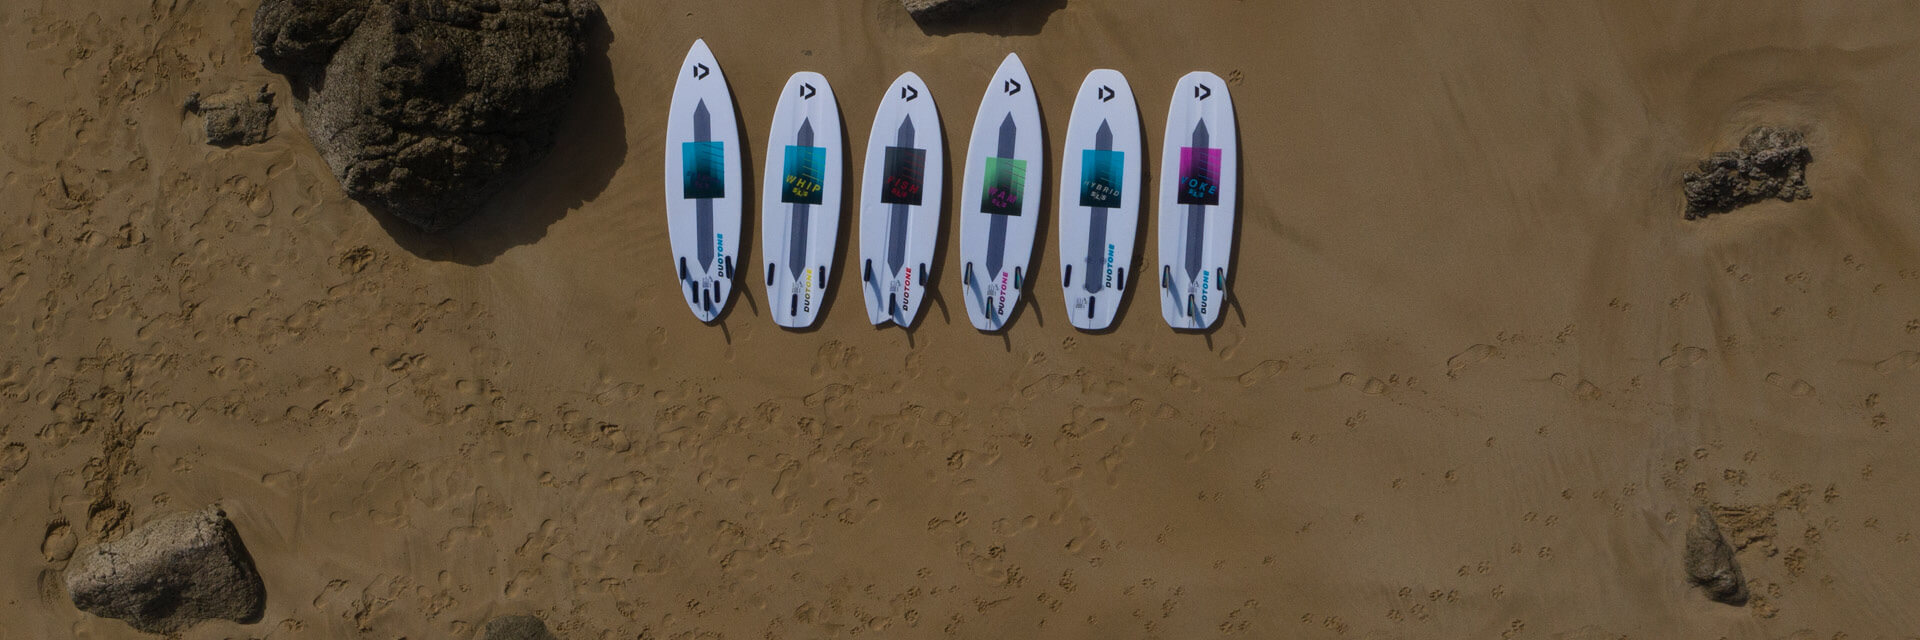 Duotone Kitesurfing_Surfboards 2021 overview